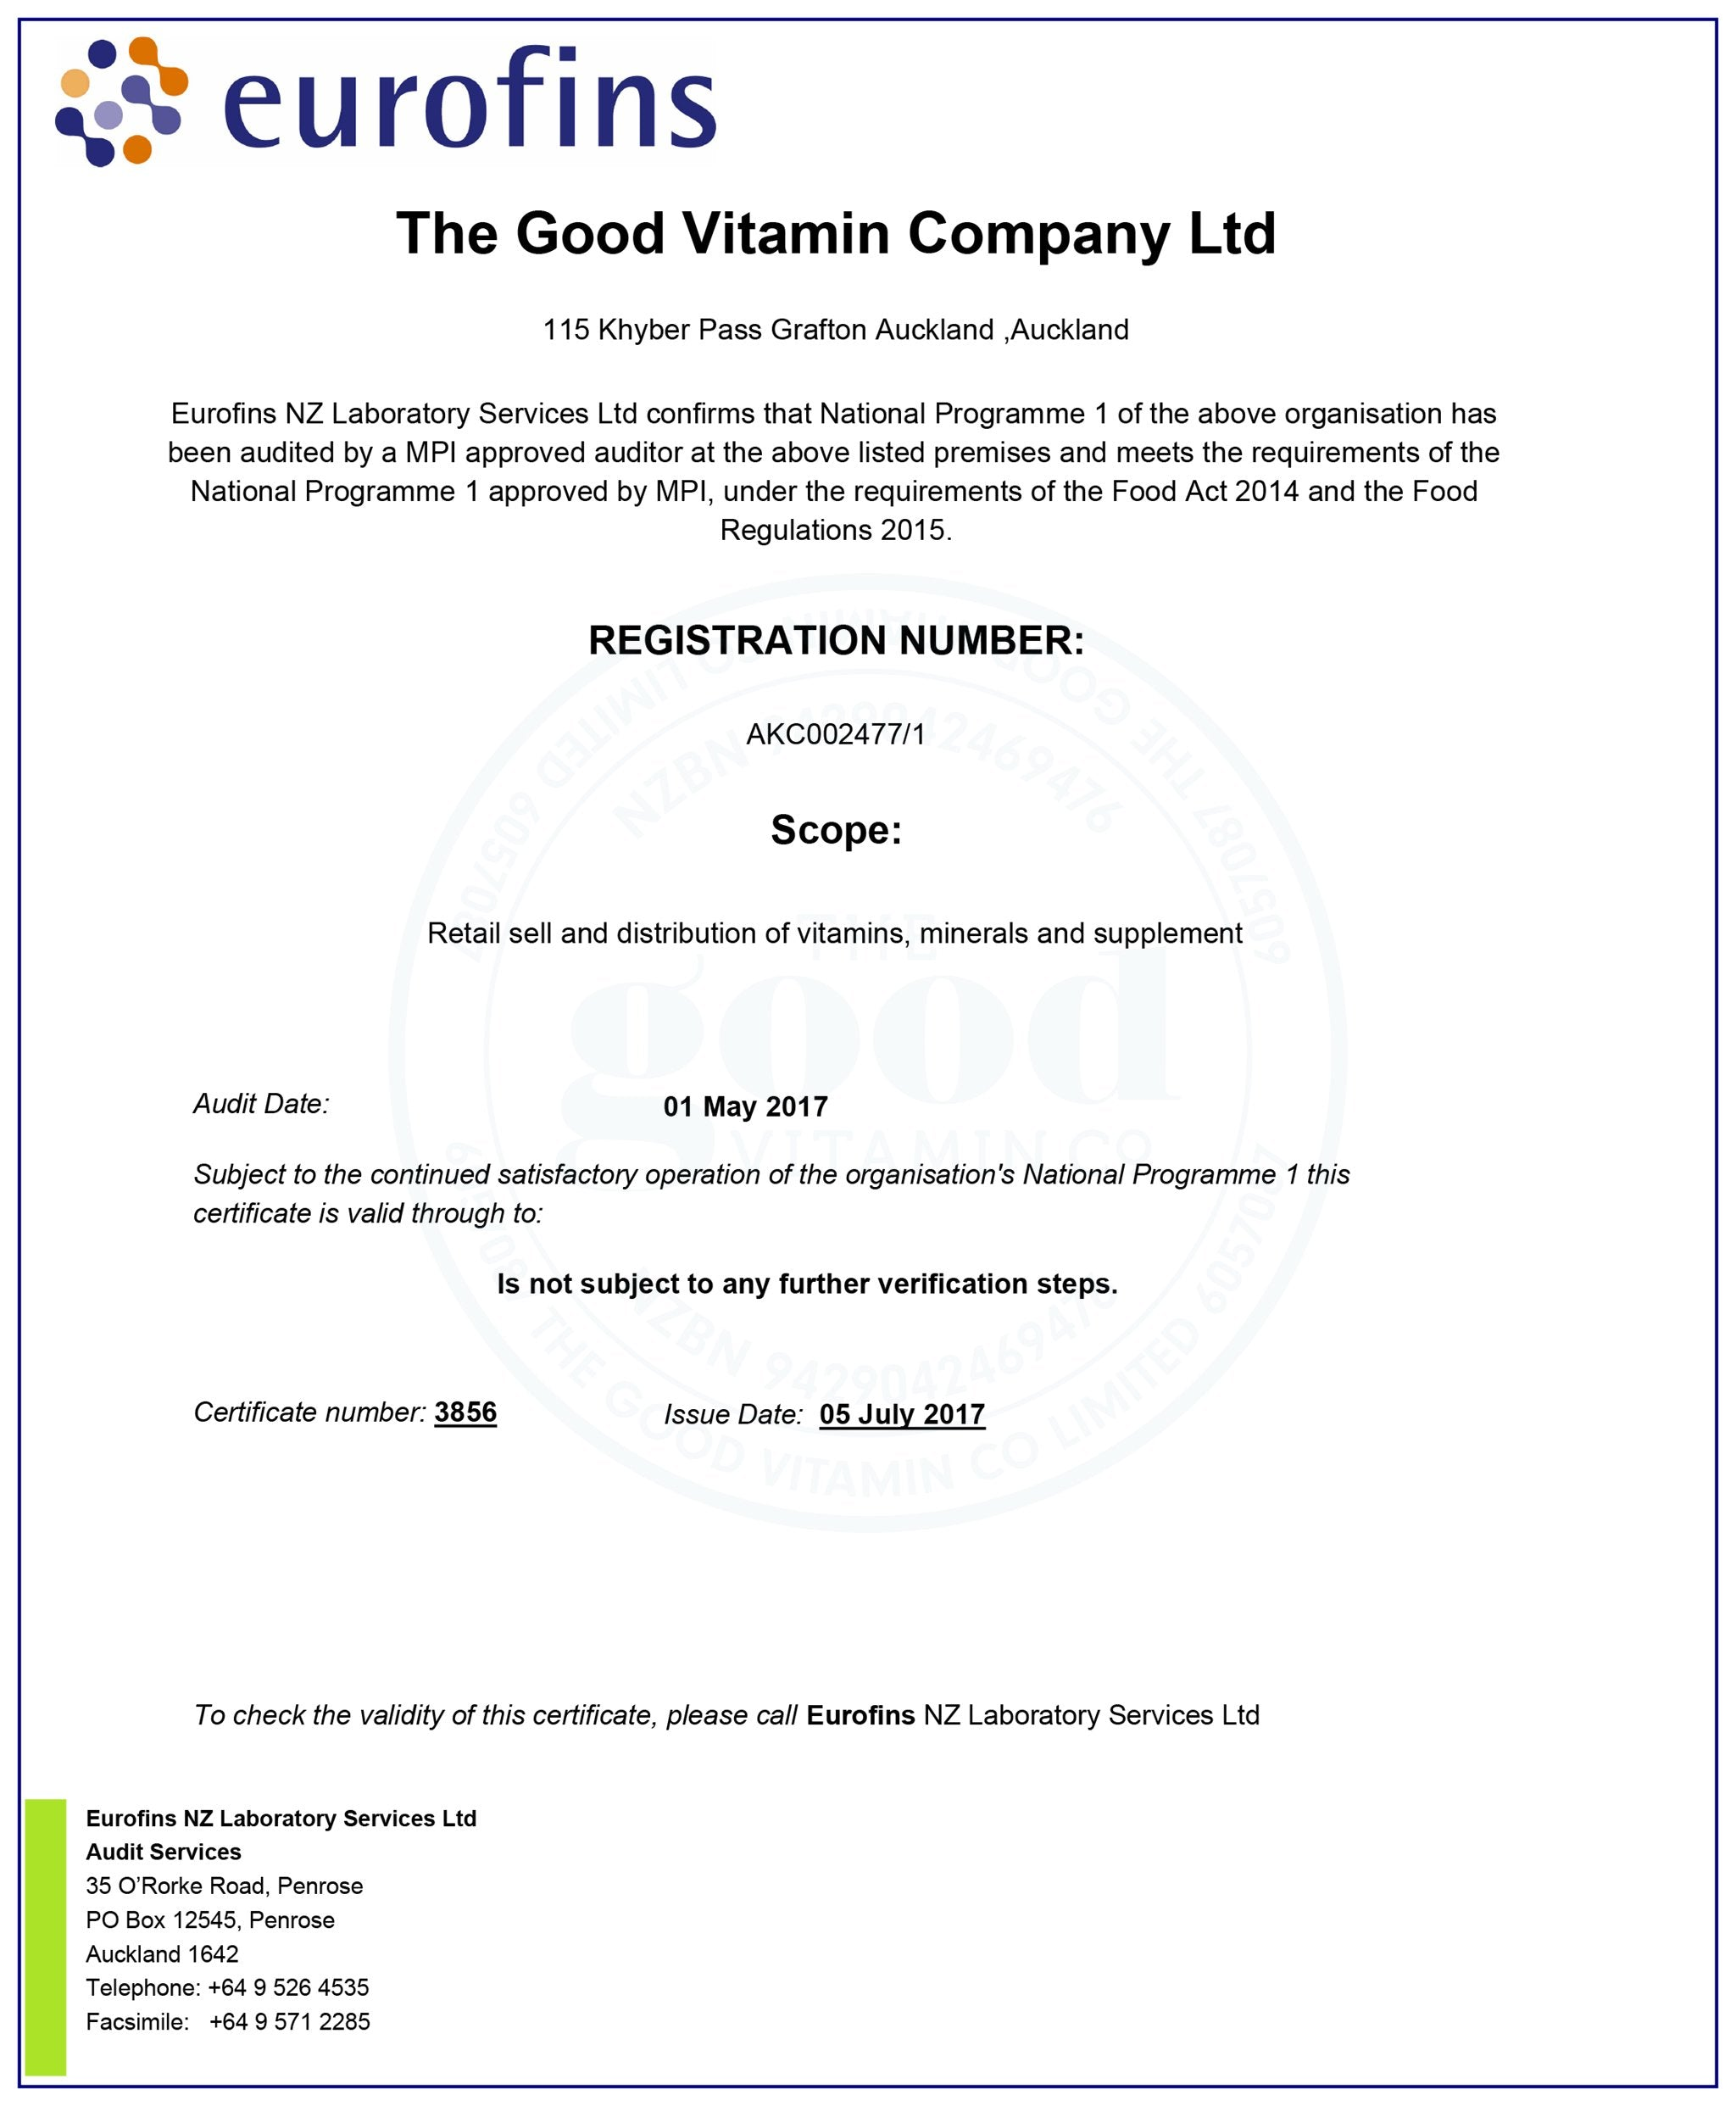 The Good Vitamin Co. Eurofins Audit Certificate 2017